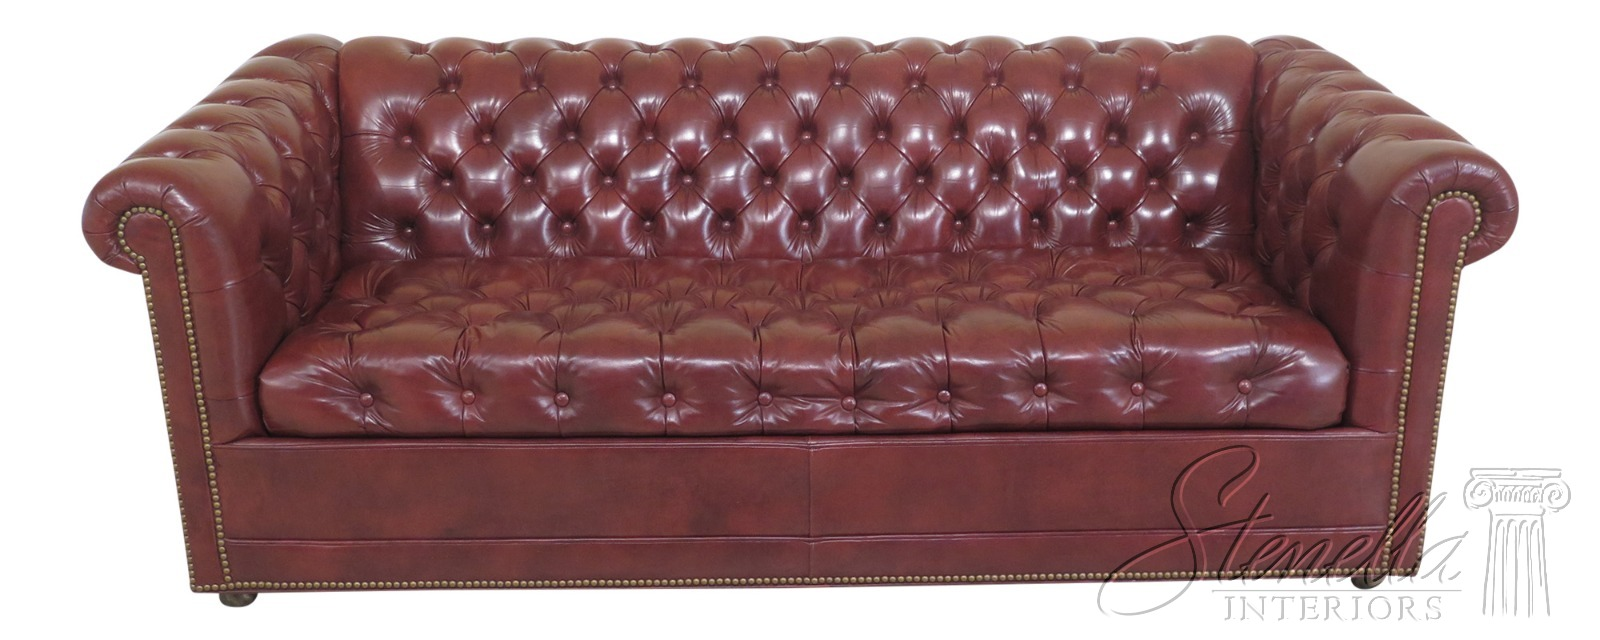 - 31383EC: LEATHERCRAFT English Style Tufted Leather Chesterfield